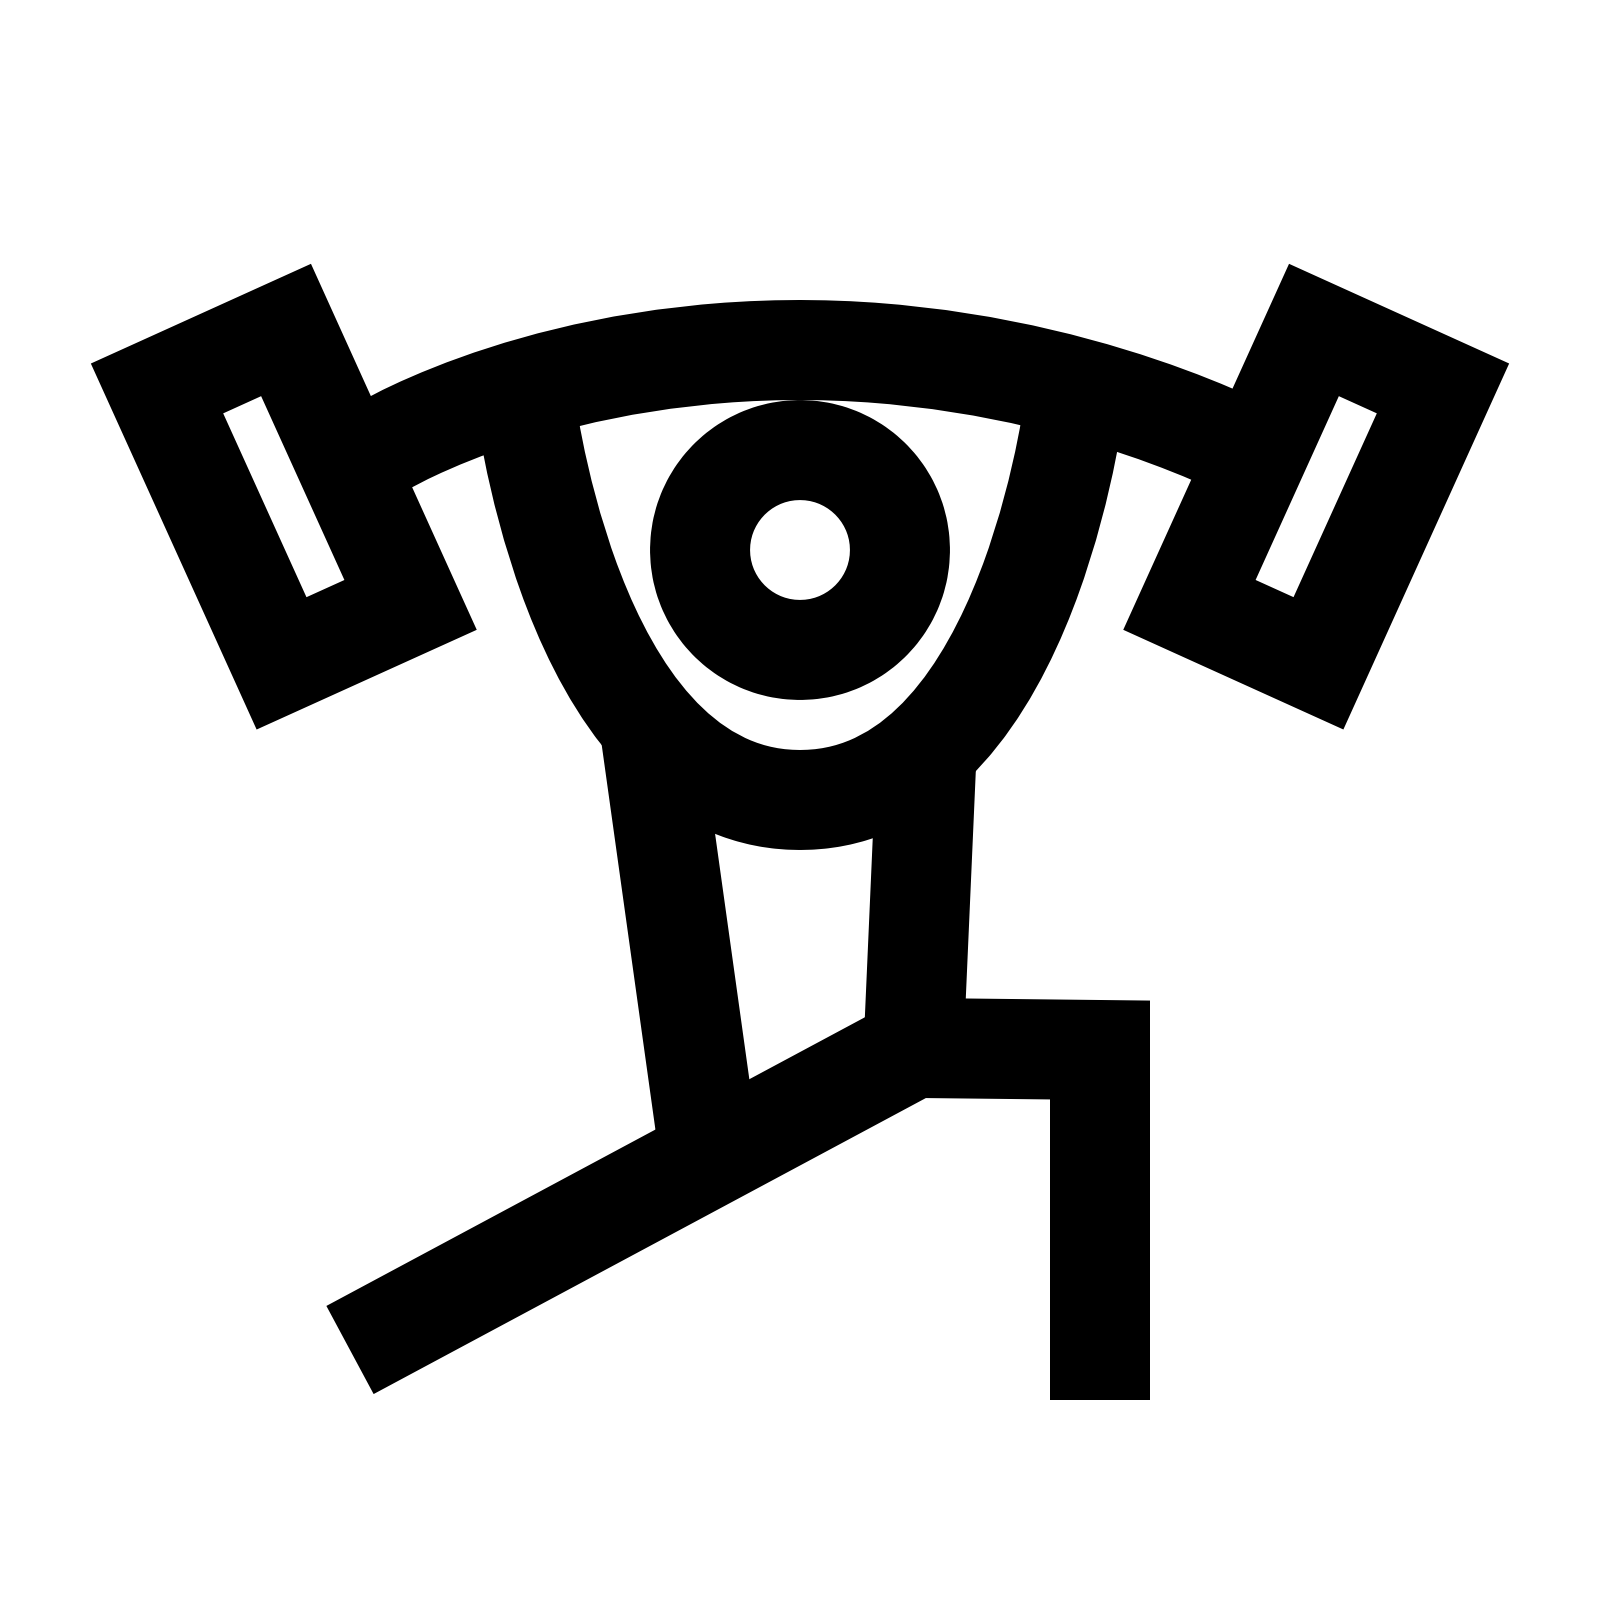 Weightlifting PNG Transparent Weightlifting.PNG Images